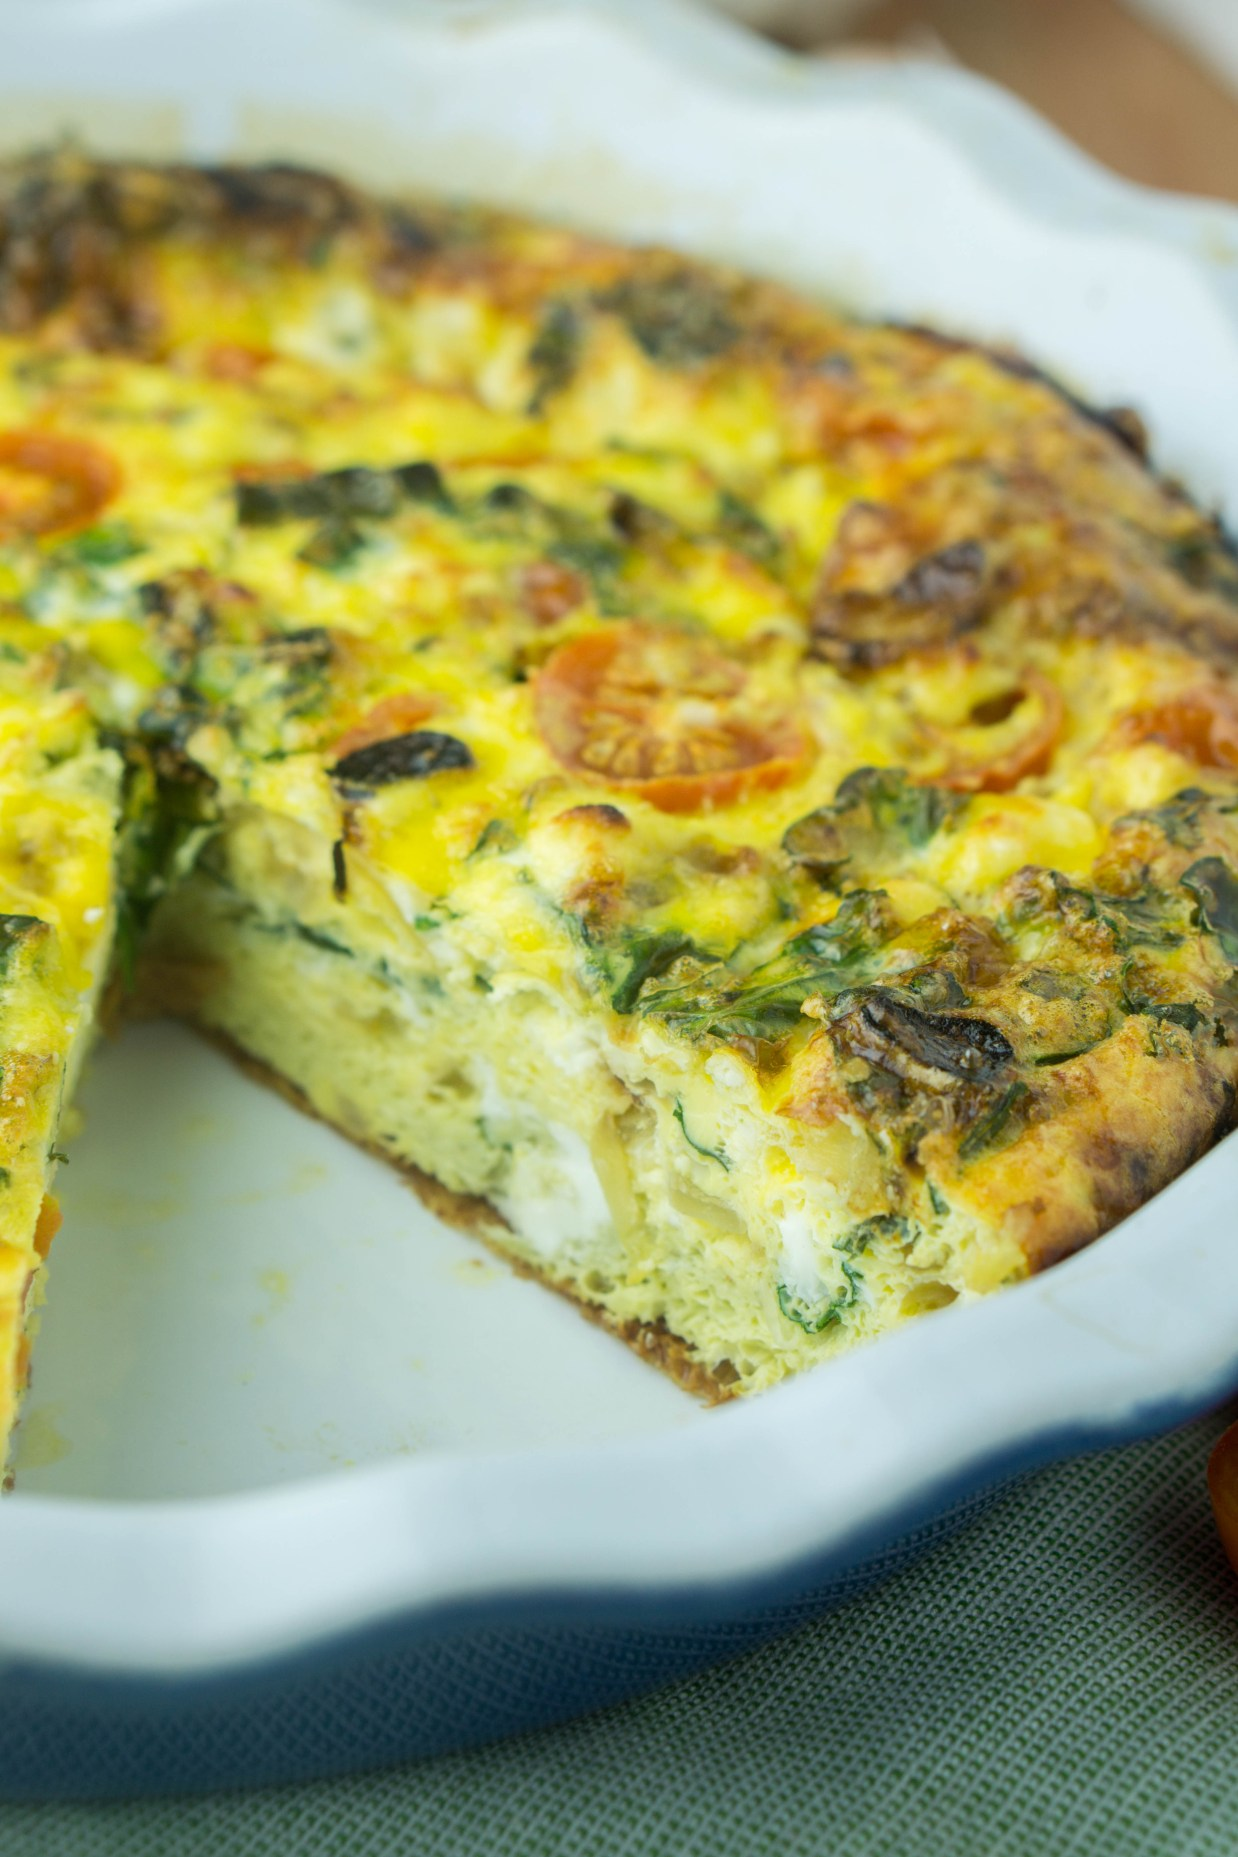 Healthy Kale Cherry Tomato FRITTATA! no butter & low-fat! #healthy #cherrytomato #kale #feta #frittata | www.wakeuptowaffles.com